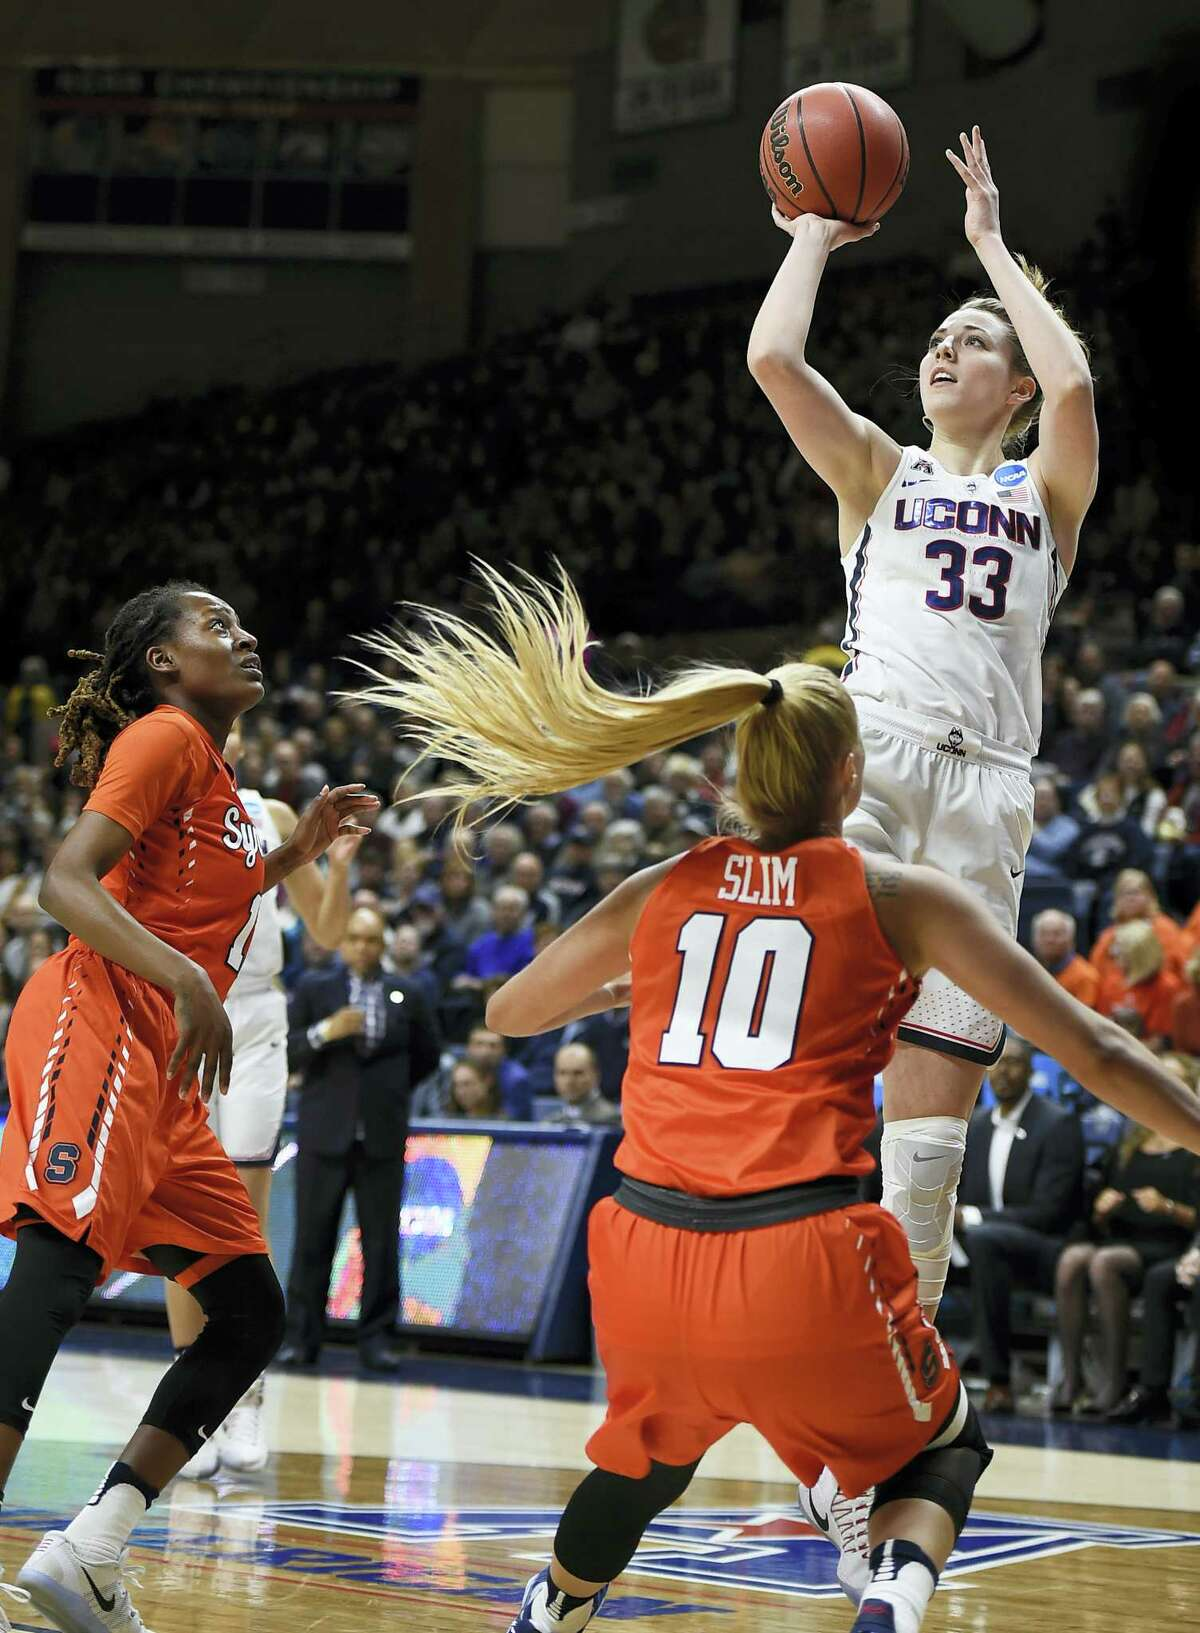 Connecticut's Katie Lou Samuelson, shoots over Syracuse's Gabby Cooper, left, and Isabella Slim.